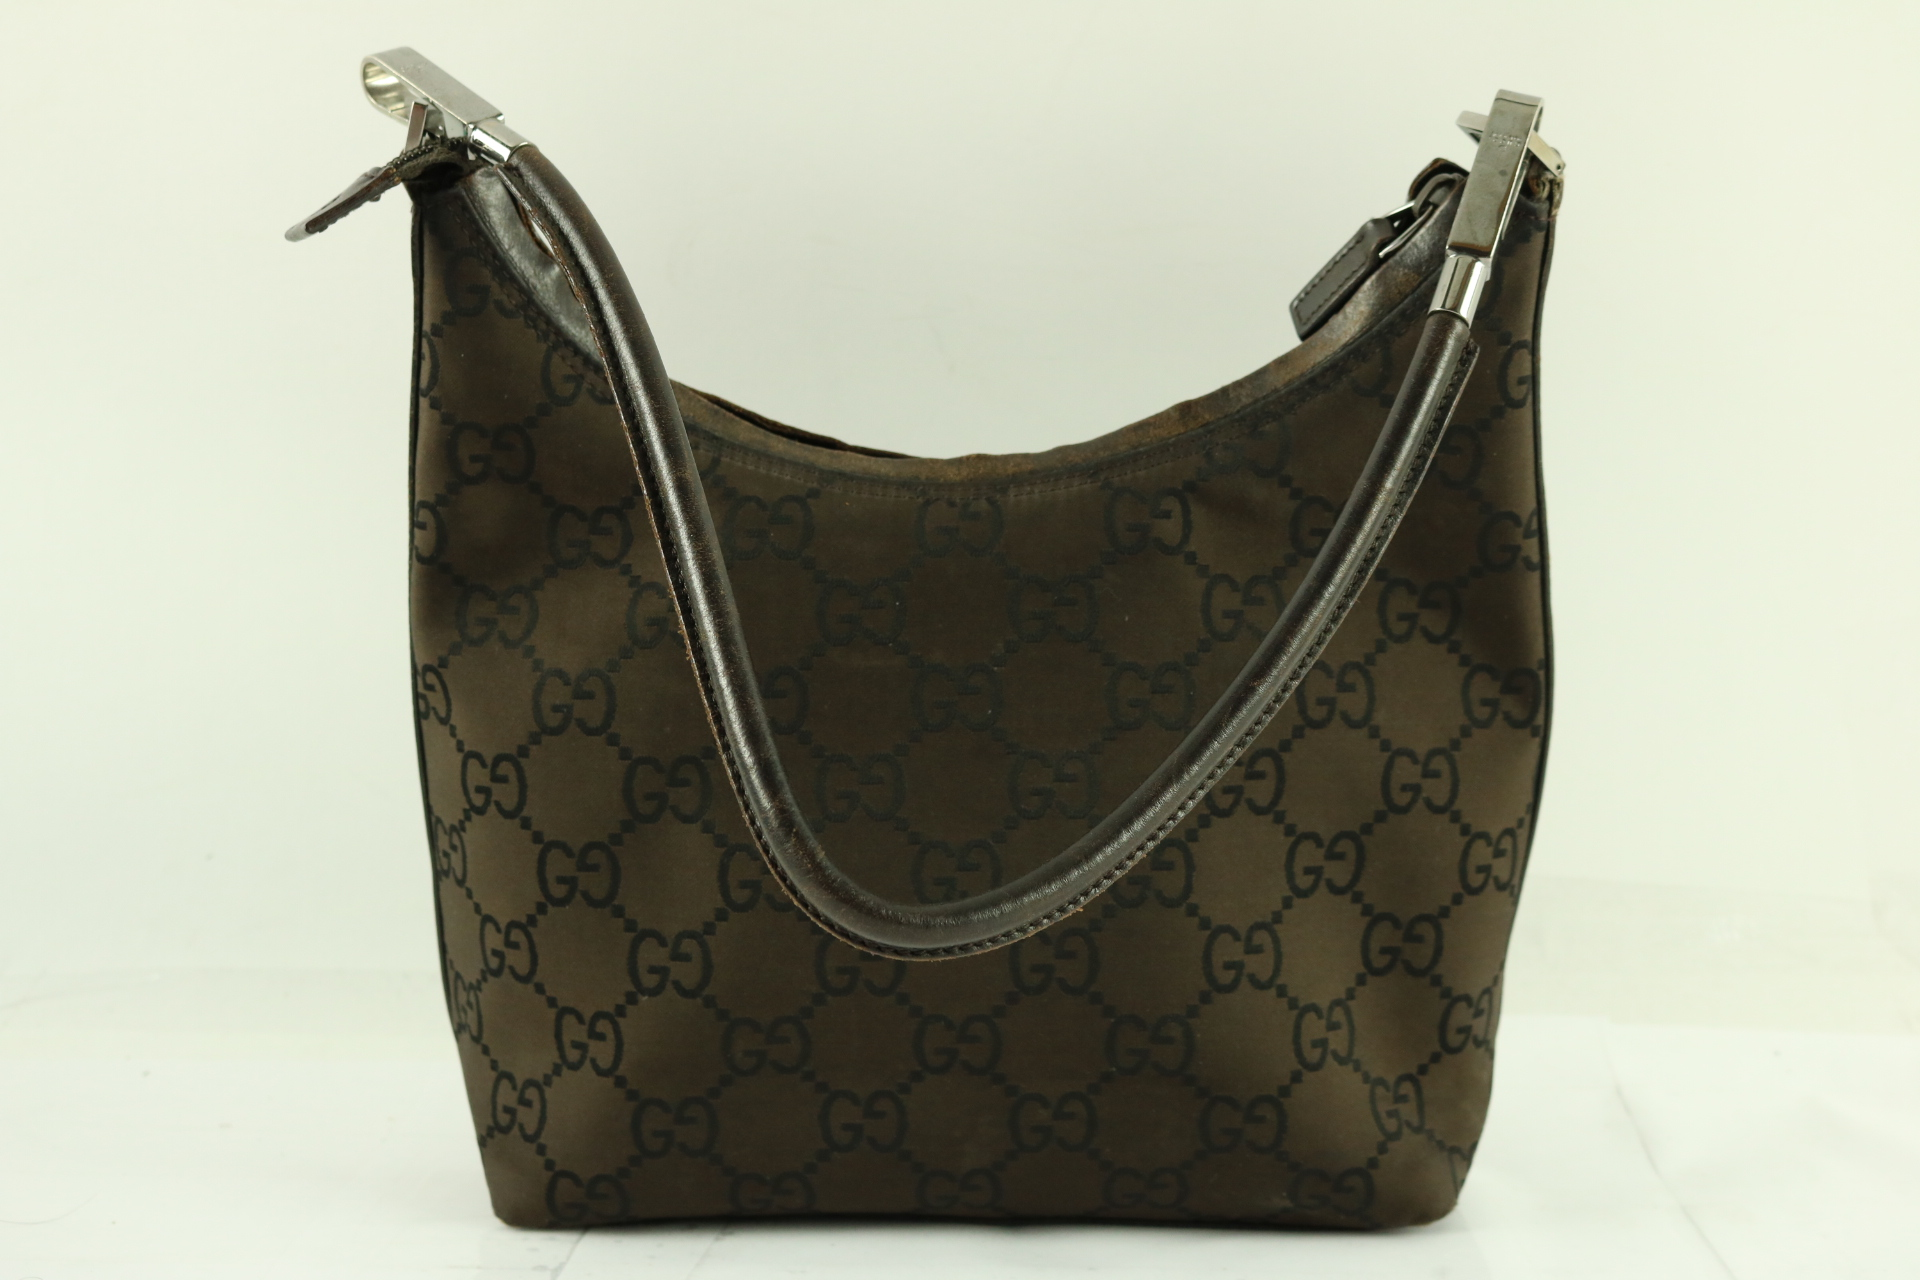 0f20a993eb8522 Details about Gucci Dark Brown Nylon GG WEB Monogram Small Hobo Handbag -  Free Ship